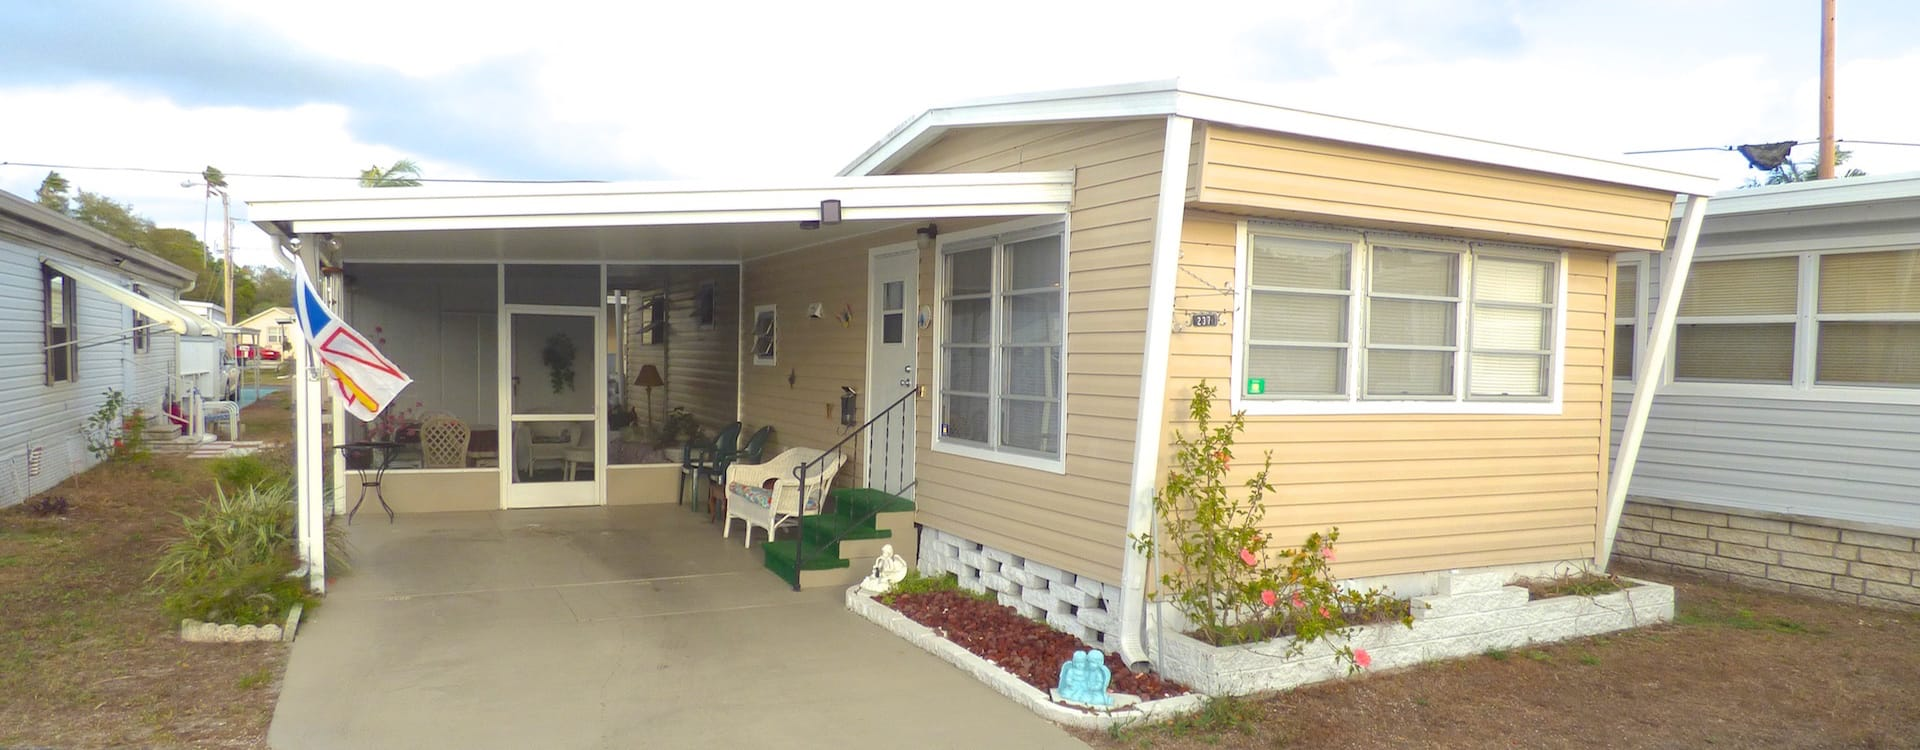 Mobile-Home-For-Sale-20170124-001-Wide Palm Harbor Triple Wide Mobile Homes on used double wide mobile homes, 20 feet wide single homes, 1995 double wide mobile homes, log style mobile homes, rustic double wide mobile homes, triple wide mobile homes, trible wide moible homes, harbor mobile homes, cool log homes, repo double wide mobile homes, luxury double wide mobile homes,